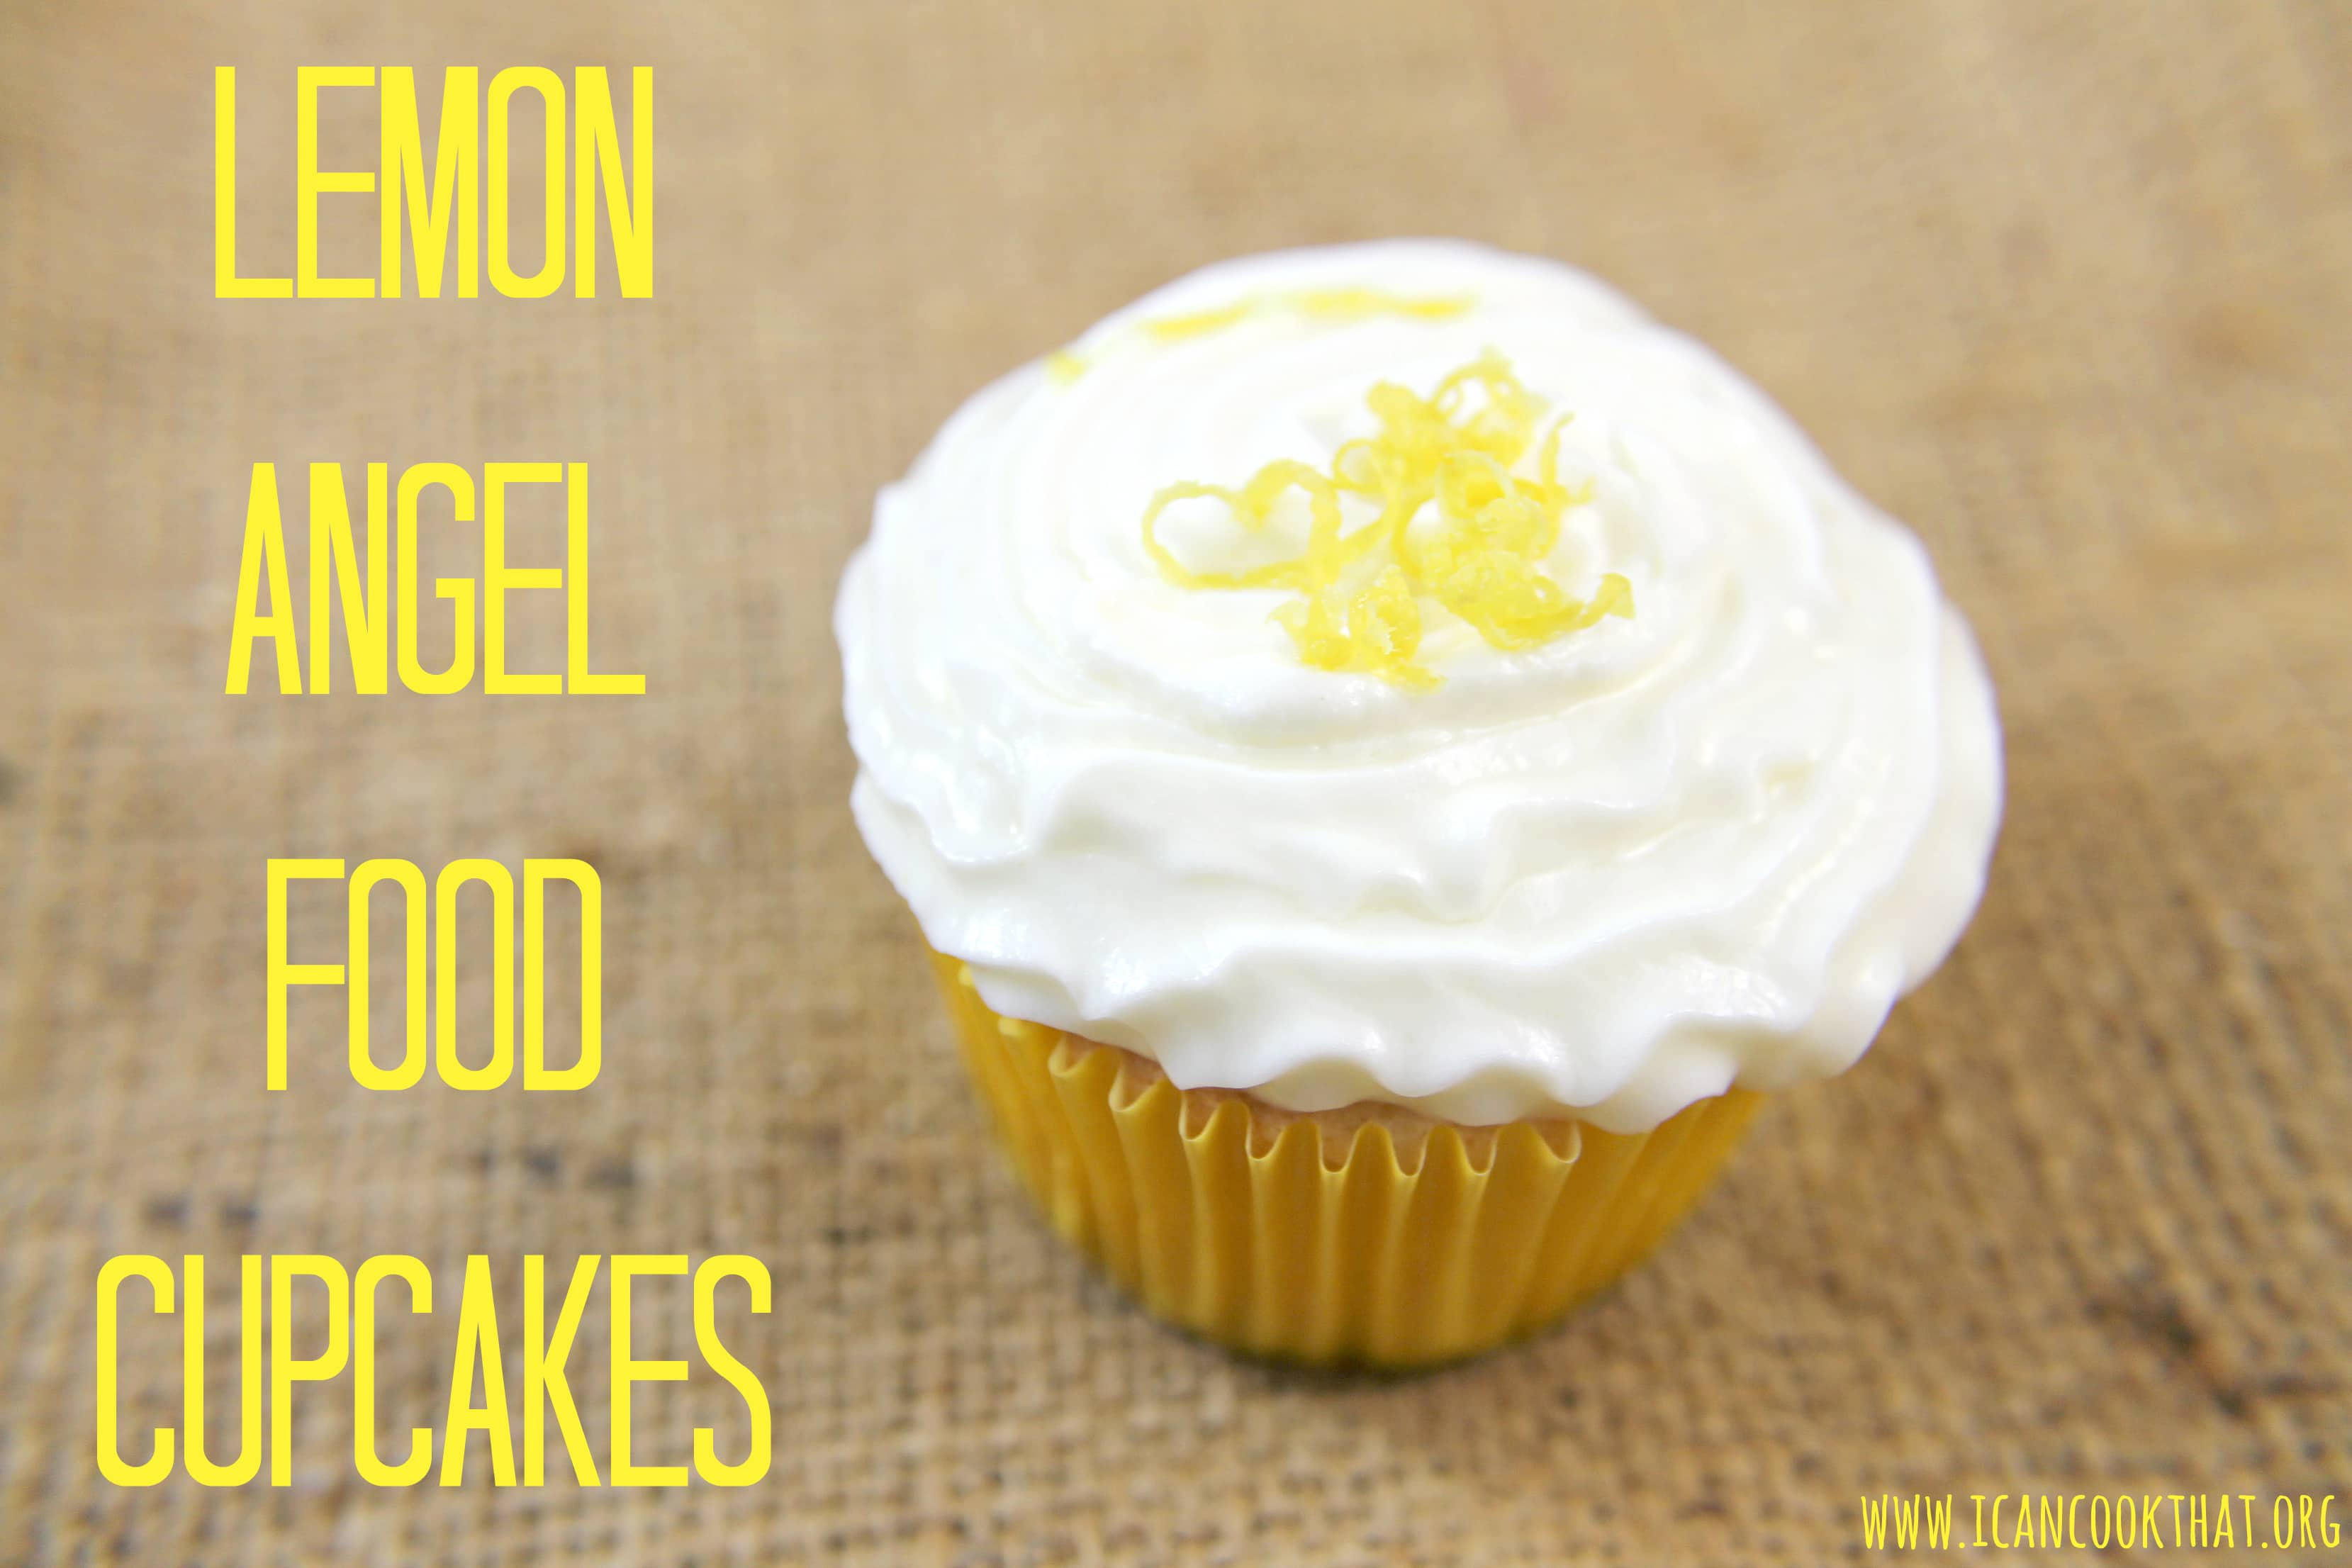 Lemon Angel Food Cupcakes Recipe | I Can Cook That | I Can Cook That